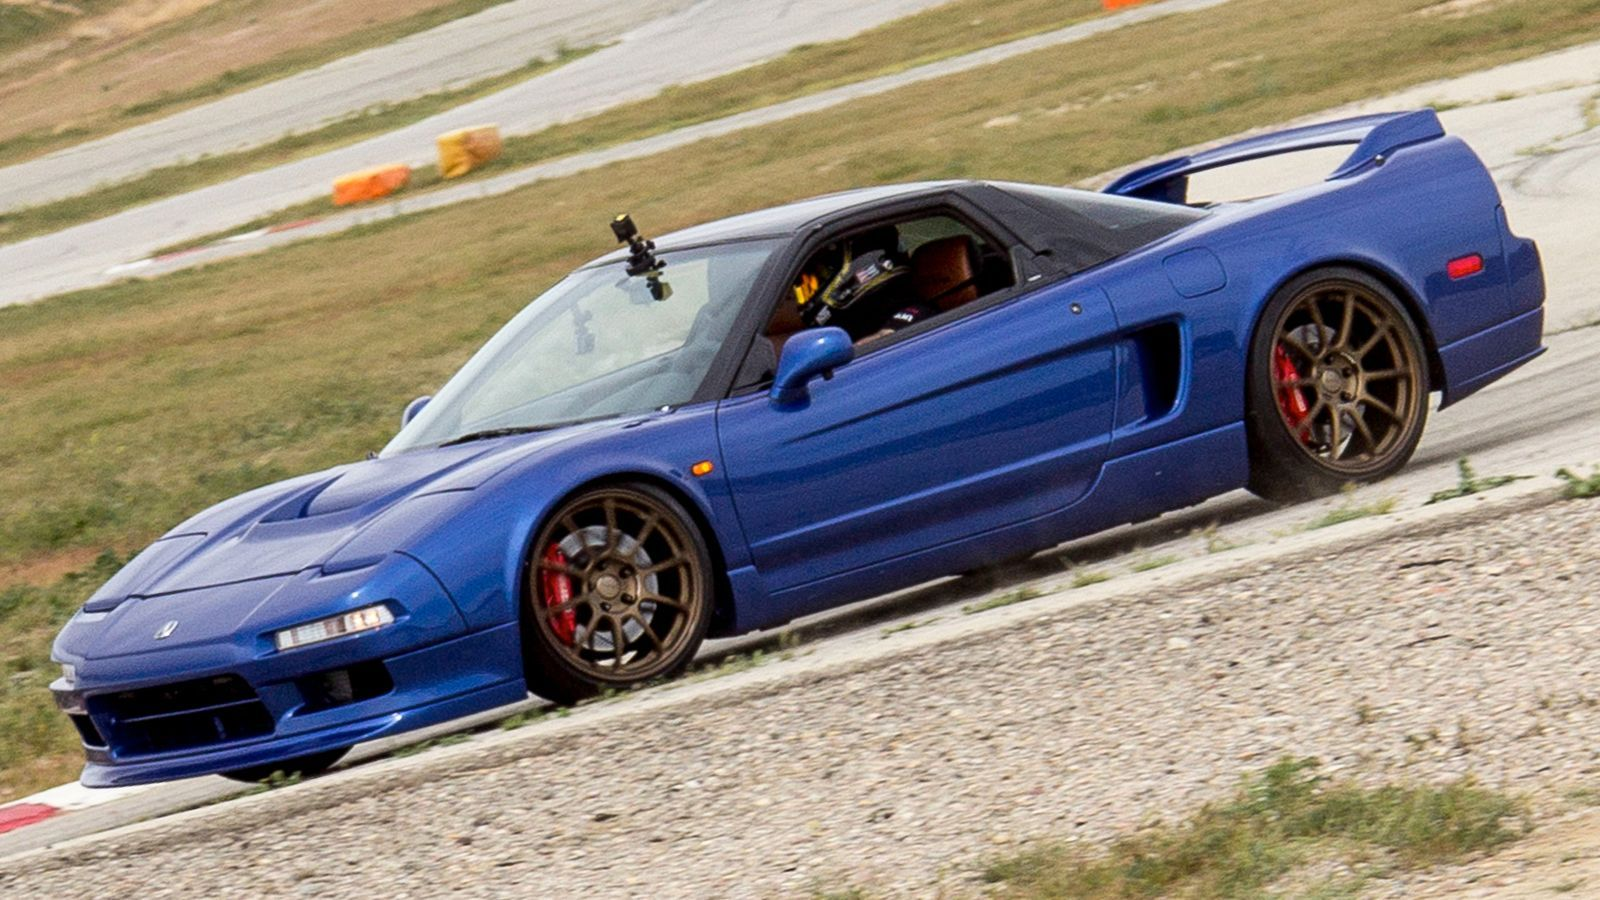 This Supercharged 403 Horsepower 1991 Acura NSX Is The Anti Tuner Tuner Car